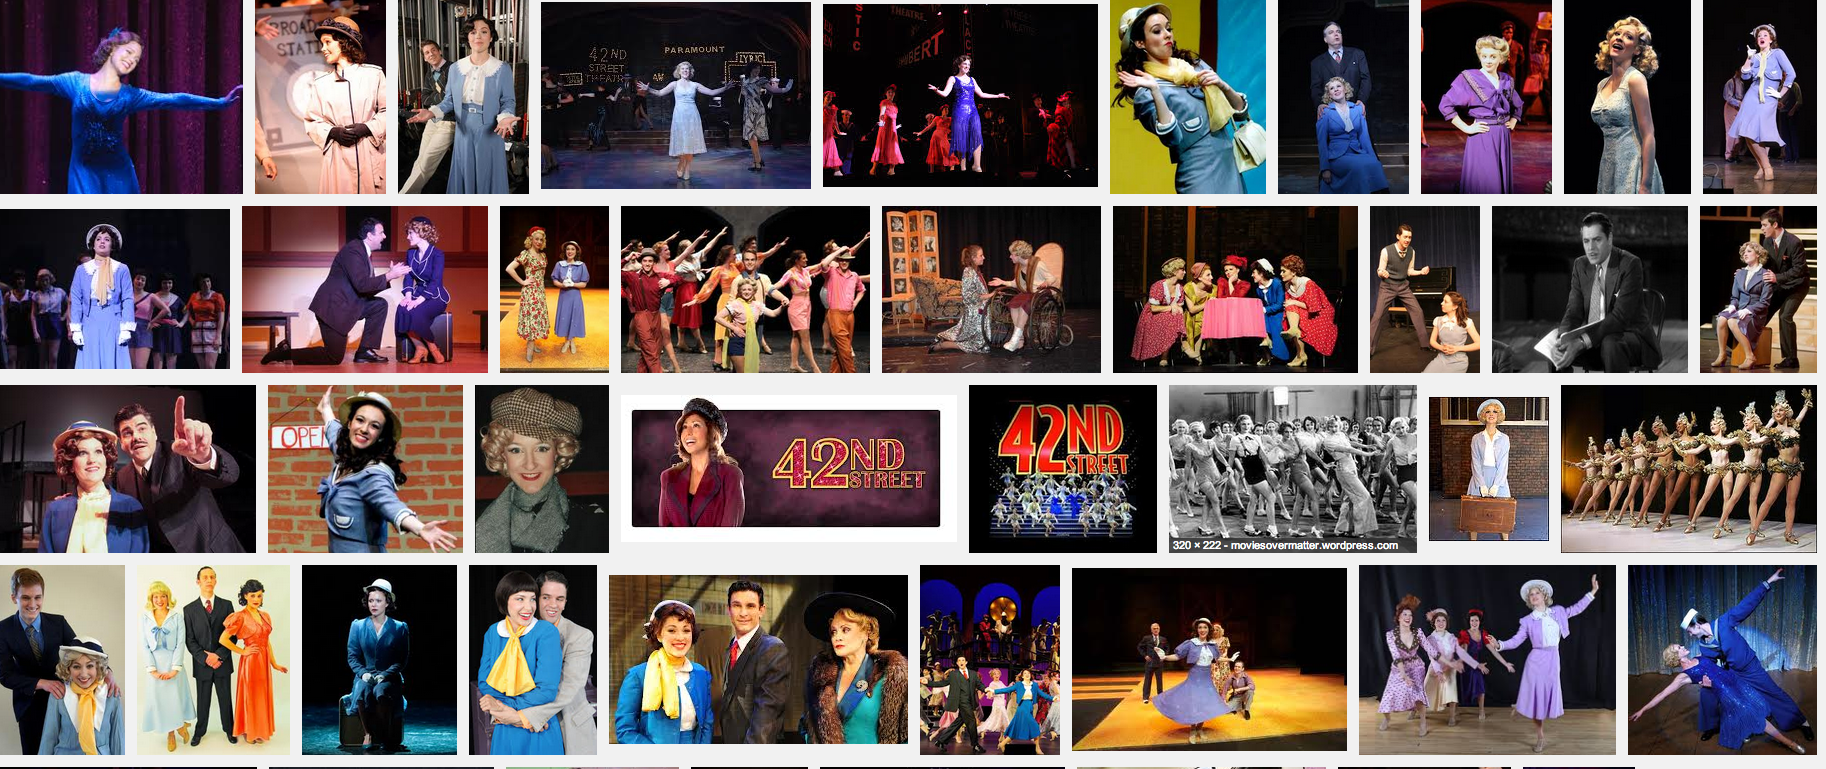 Peggy Sawyer Google Image Search 42nd Street